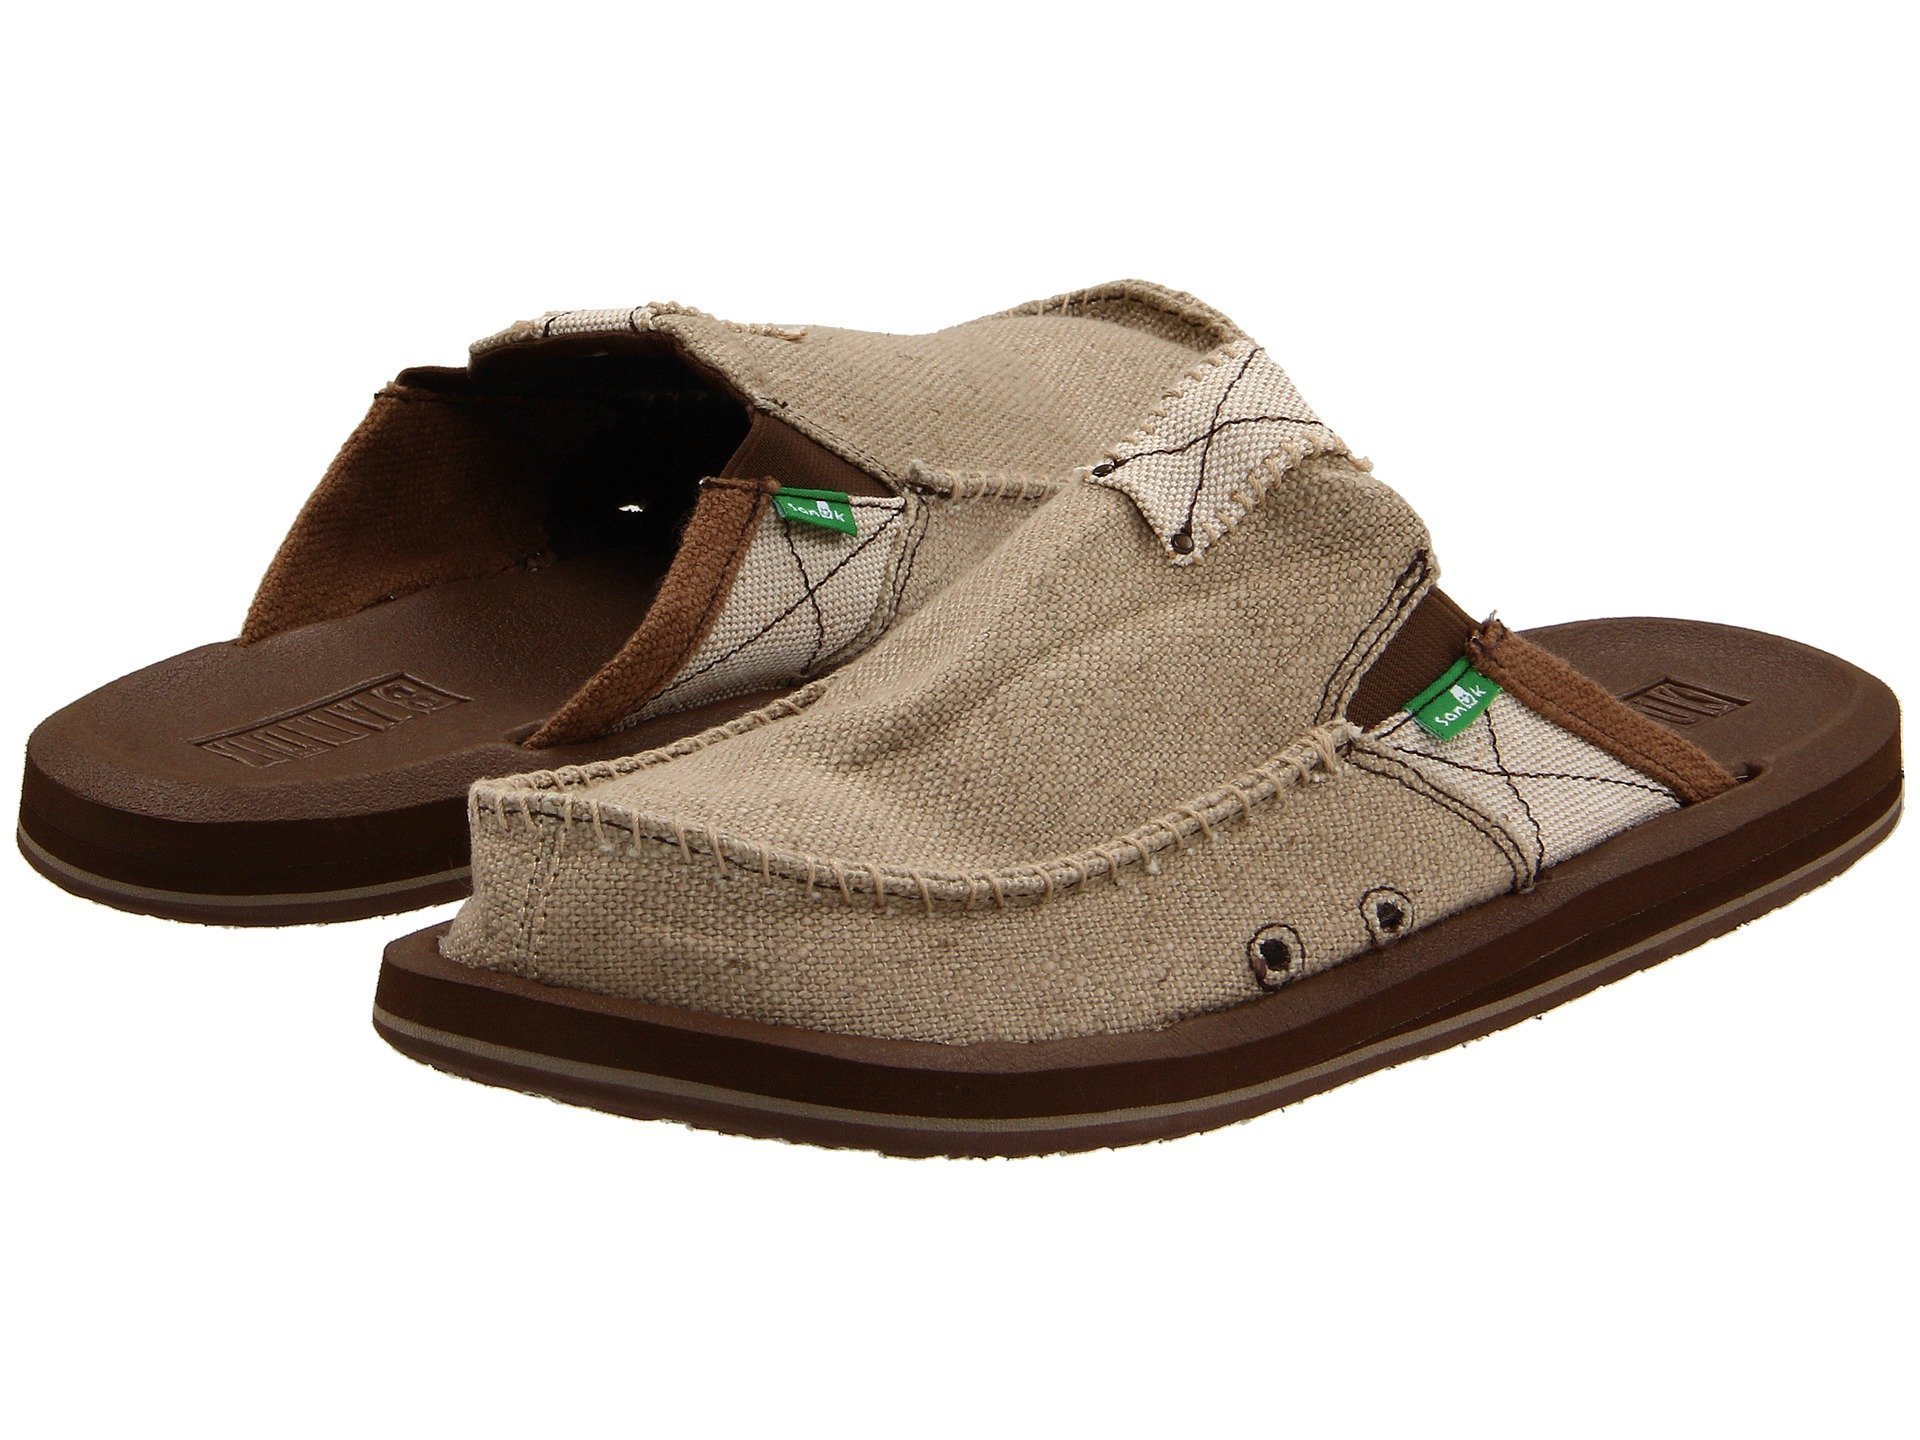 Sanuk Men's You Got My Back II Slip On, Tan, 9 M US